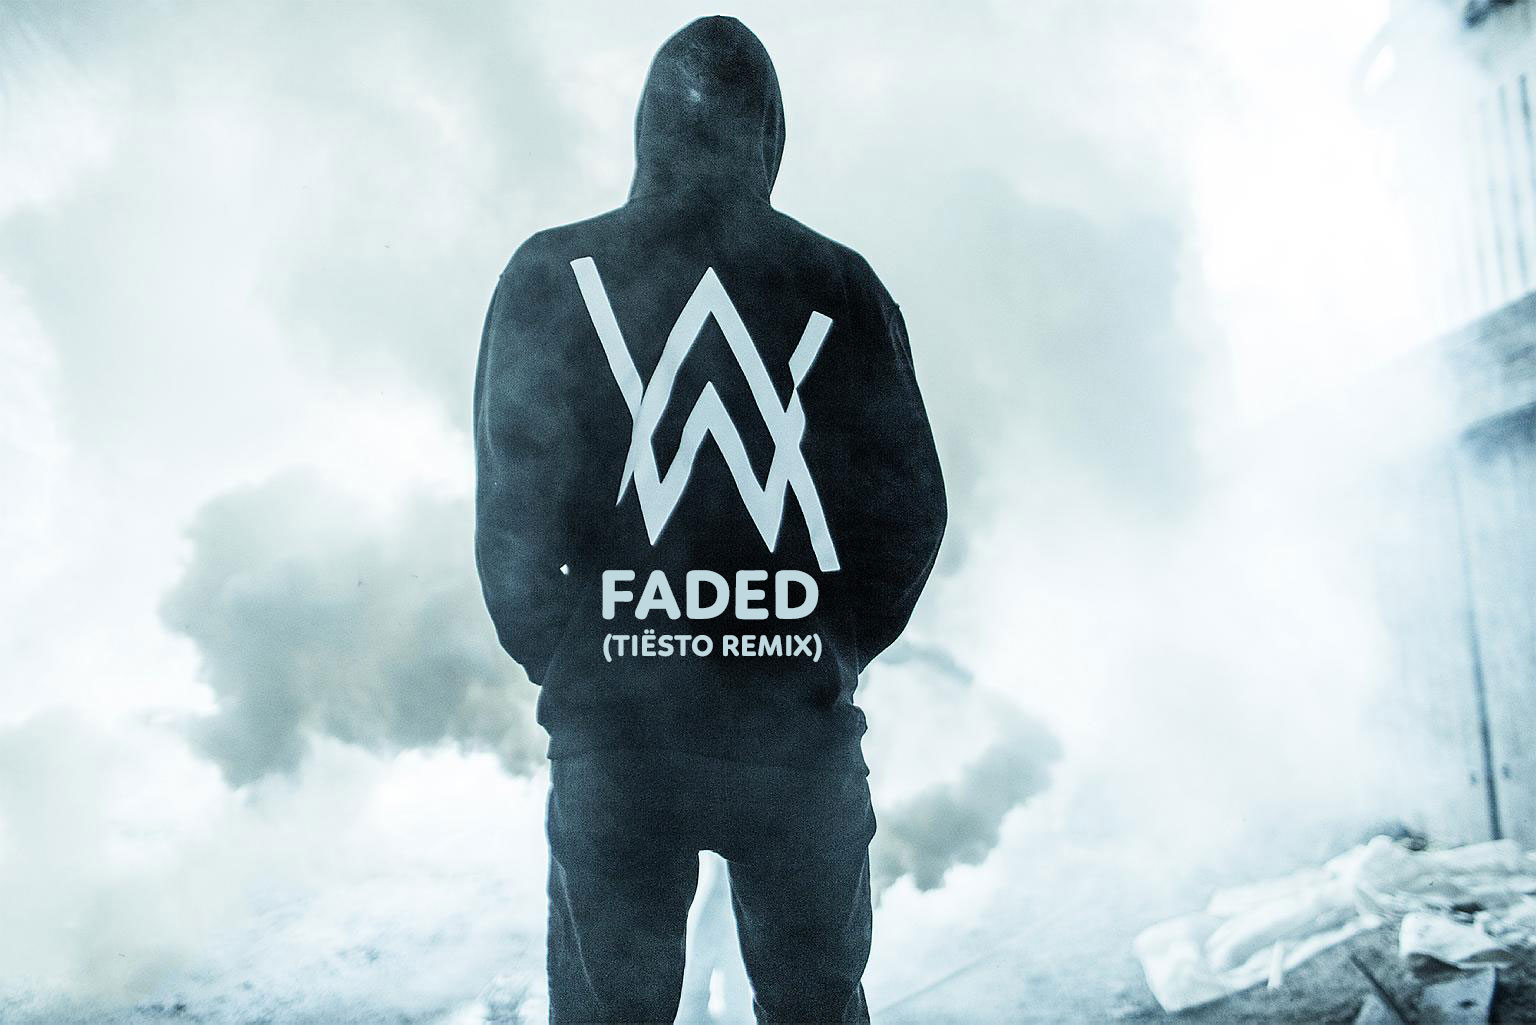 Alan Walker - Faded (Tiësto Remix) - pobierz mp3, download